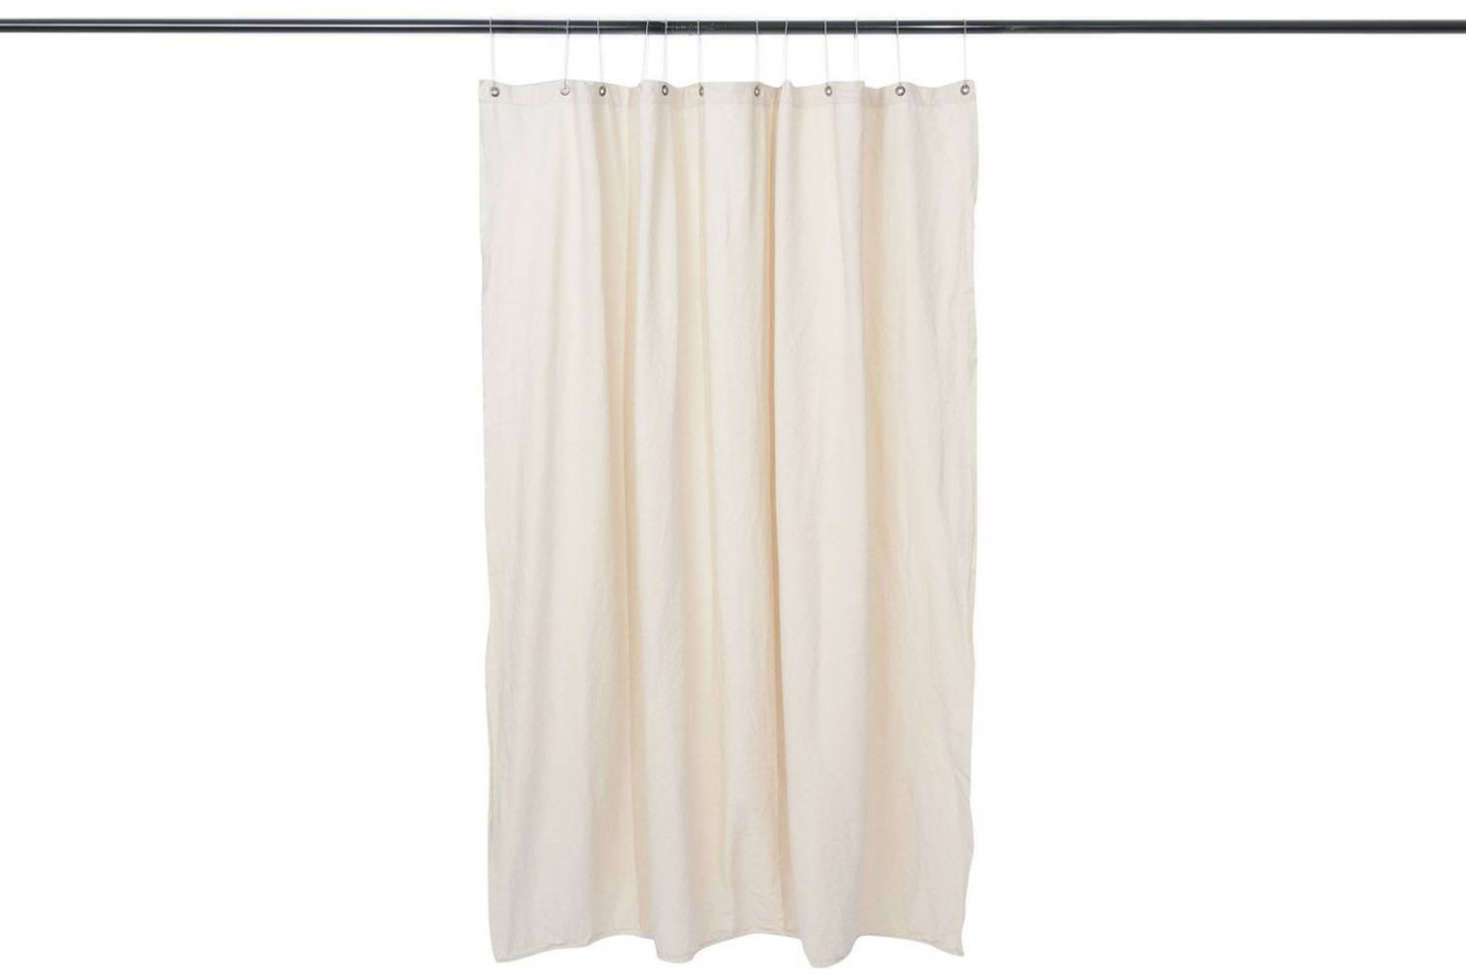 The Utility Canvas Curtain Panel is made with preshrunk canvas and cut in a 68-by-70-inch panel; $106 at Utility Canvas.